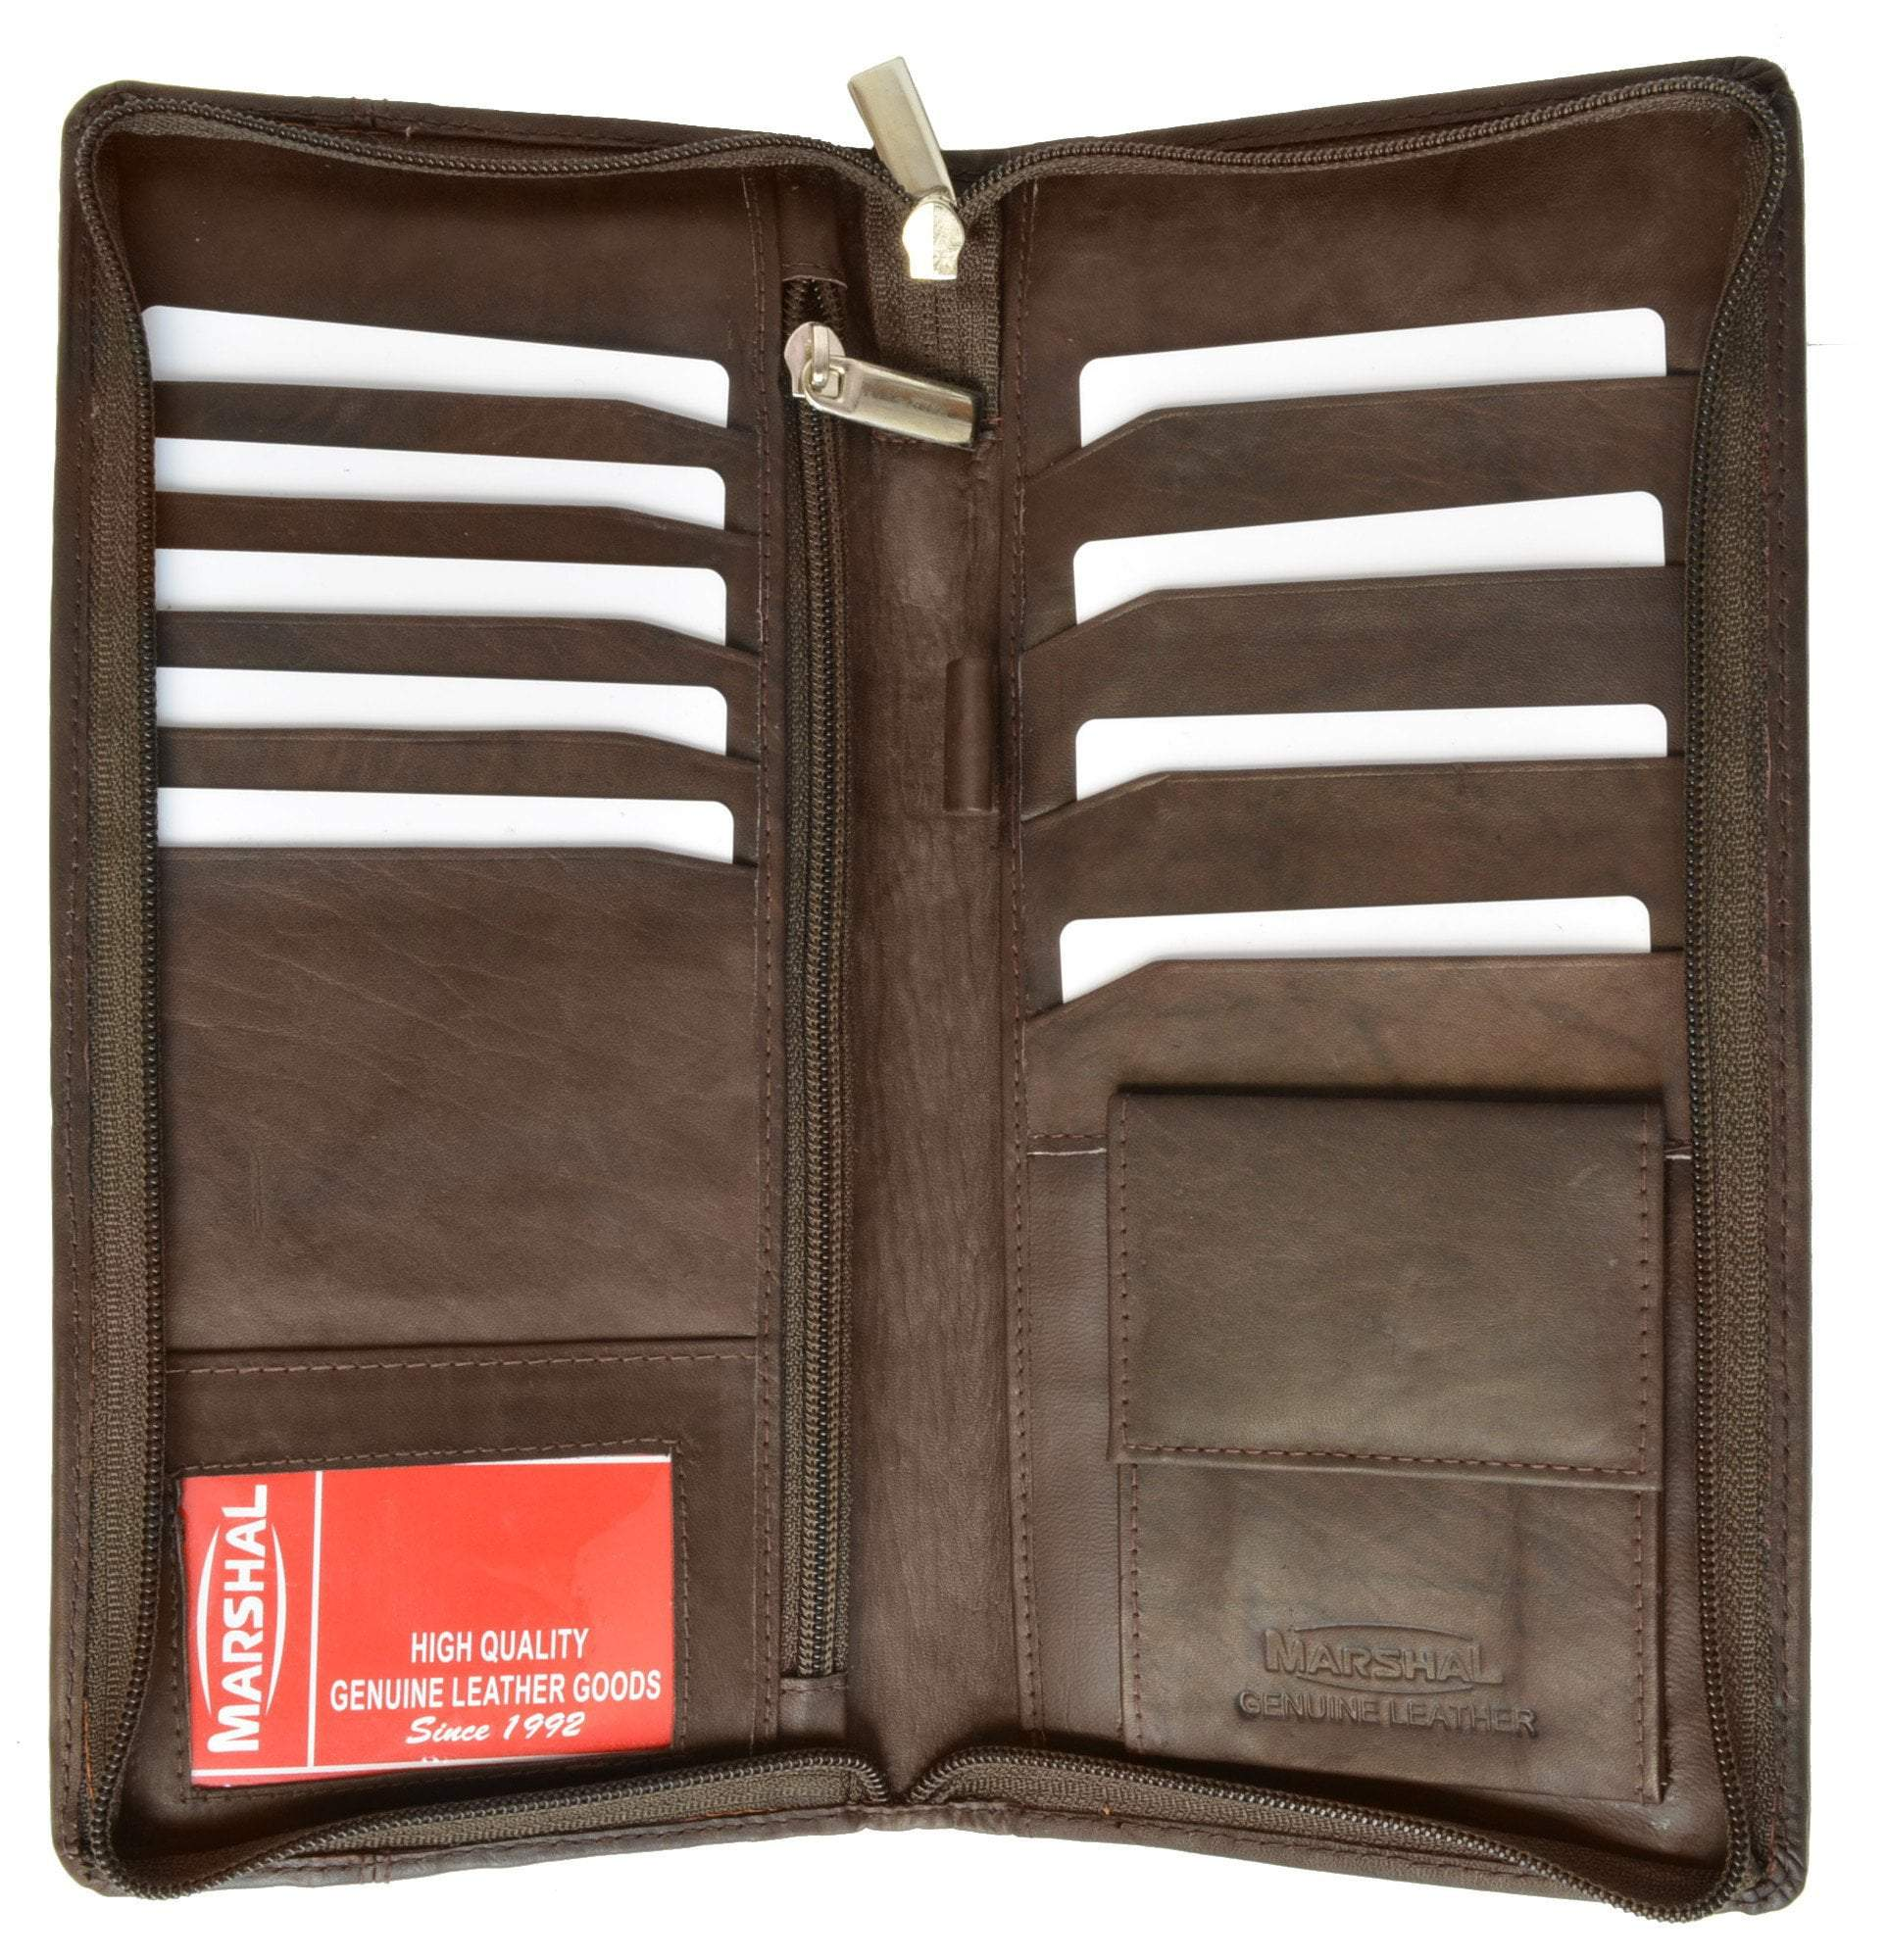 2d39e07bdb36 Zip Around Leather Travel Wallet with Passport and Boarding Pass Holder 663  CF (C)